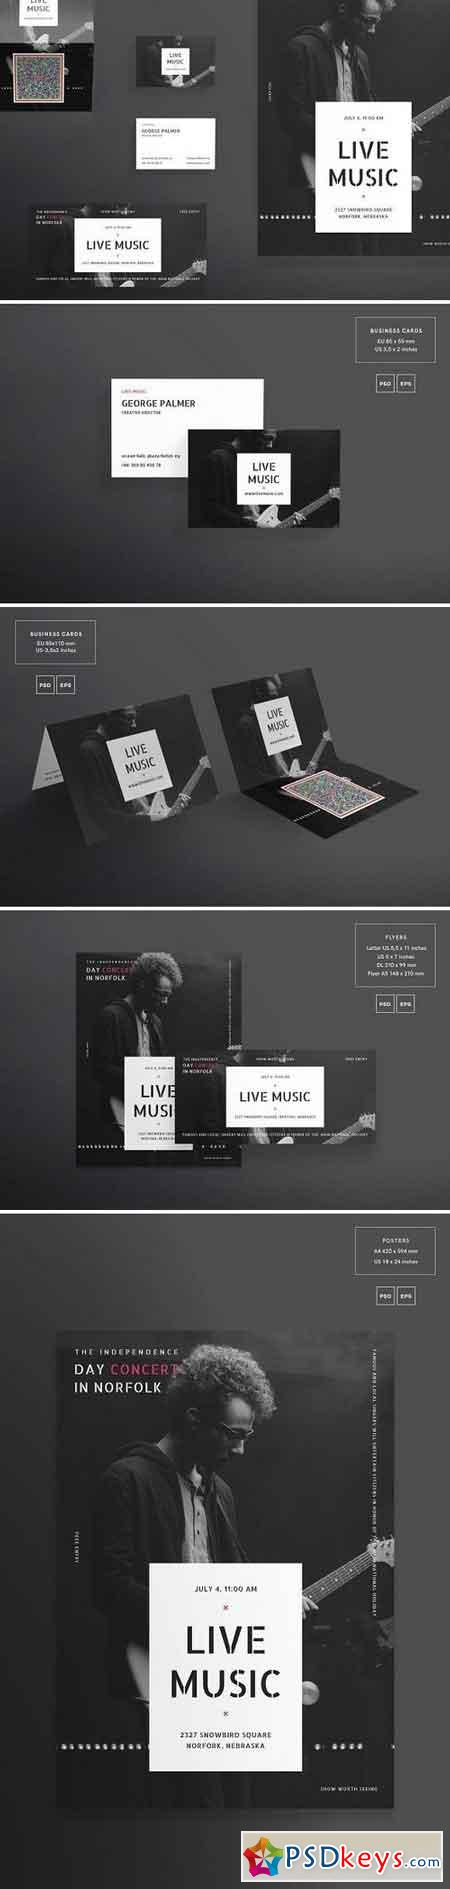 Print Pack Live Music 1498519